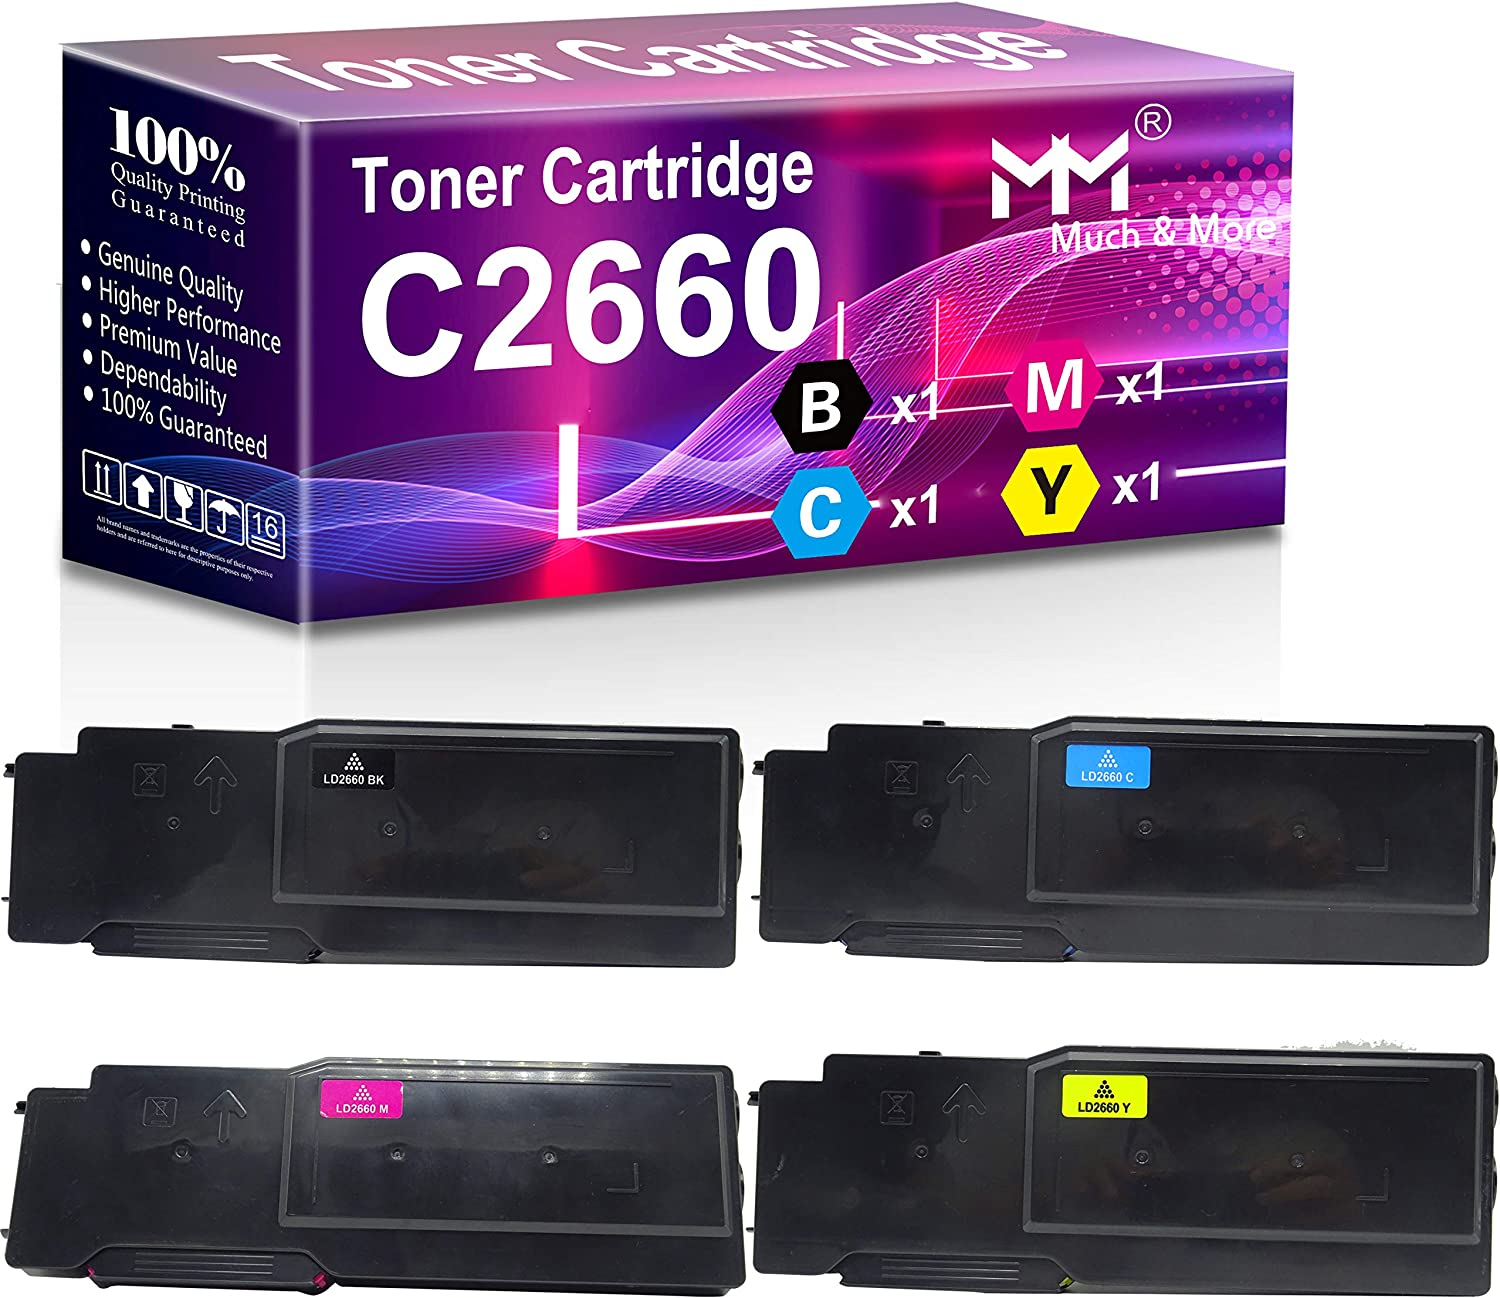 (4-Pack, Black+Cyan+Magenta+Yellow) Compatible 2660DN Toner Cartridge Used for Dell C2660 C2660dn C2665dnf 2660 Printer, Sold by MuchMore